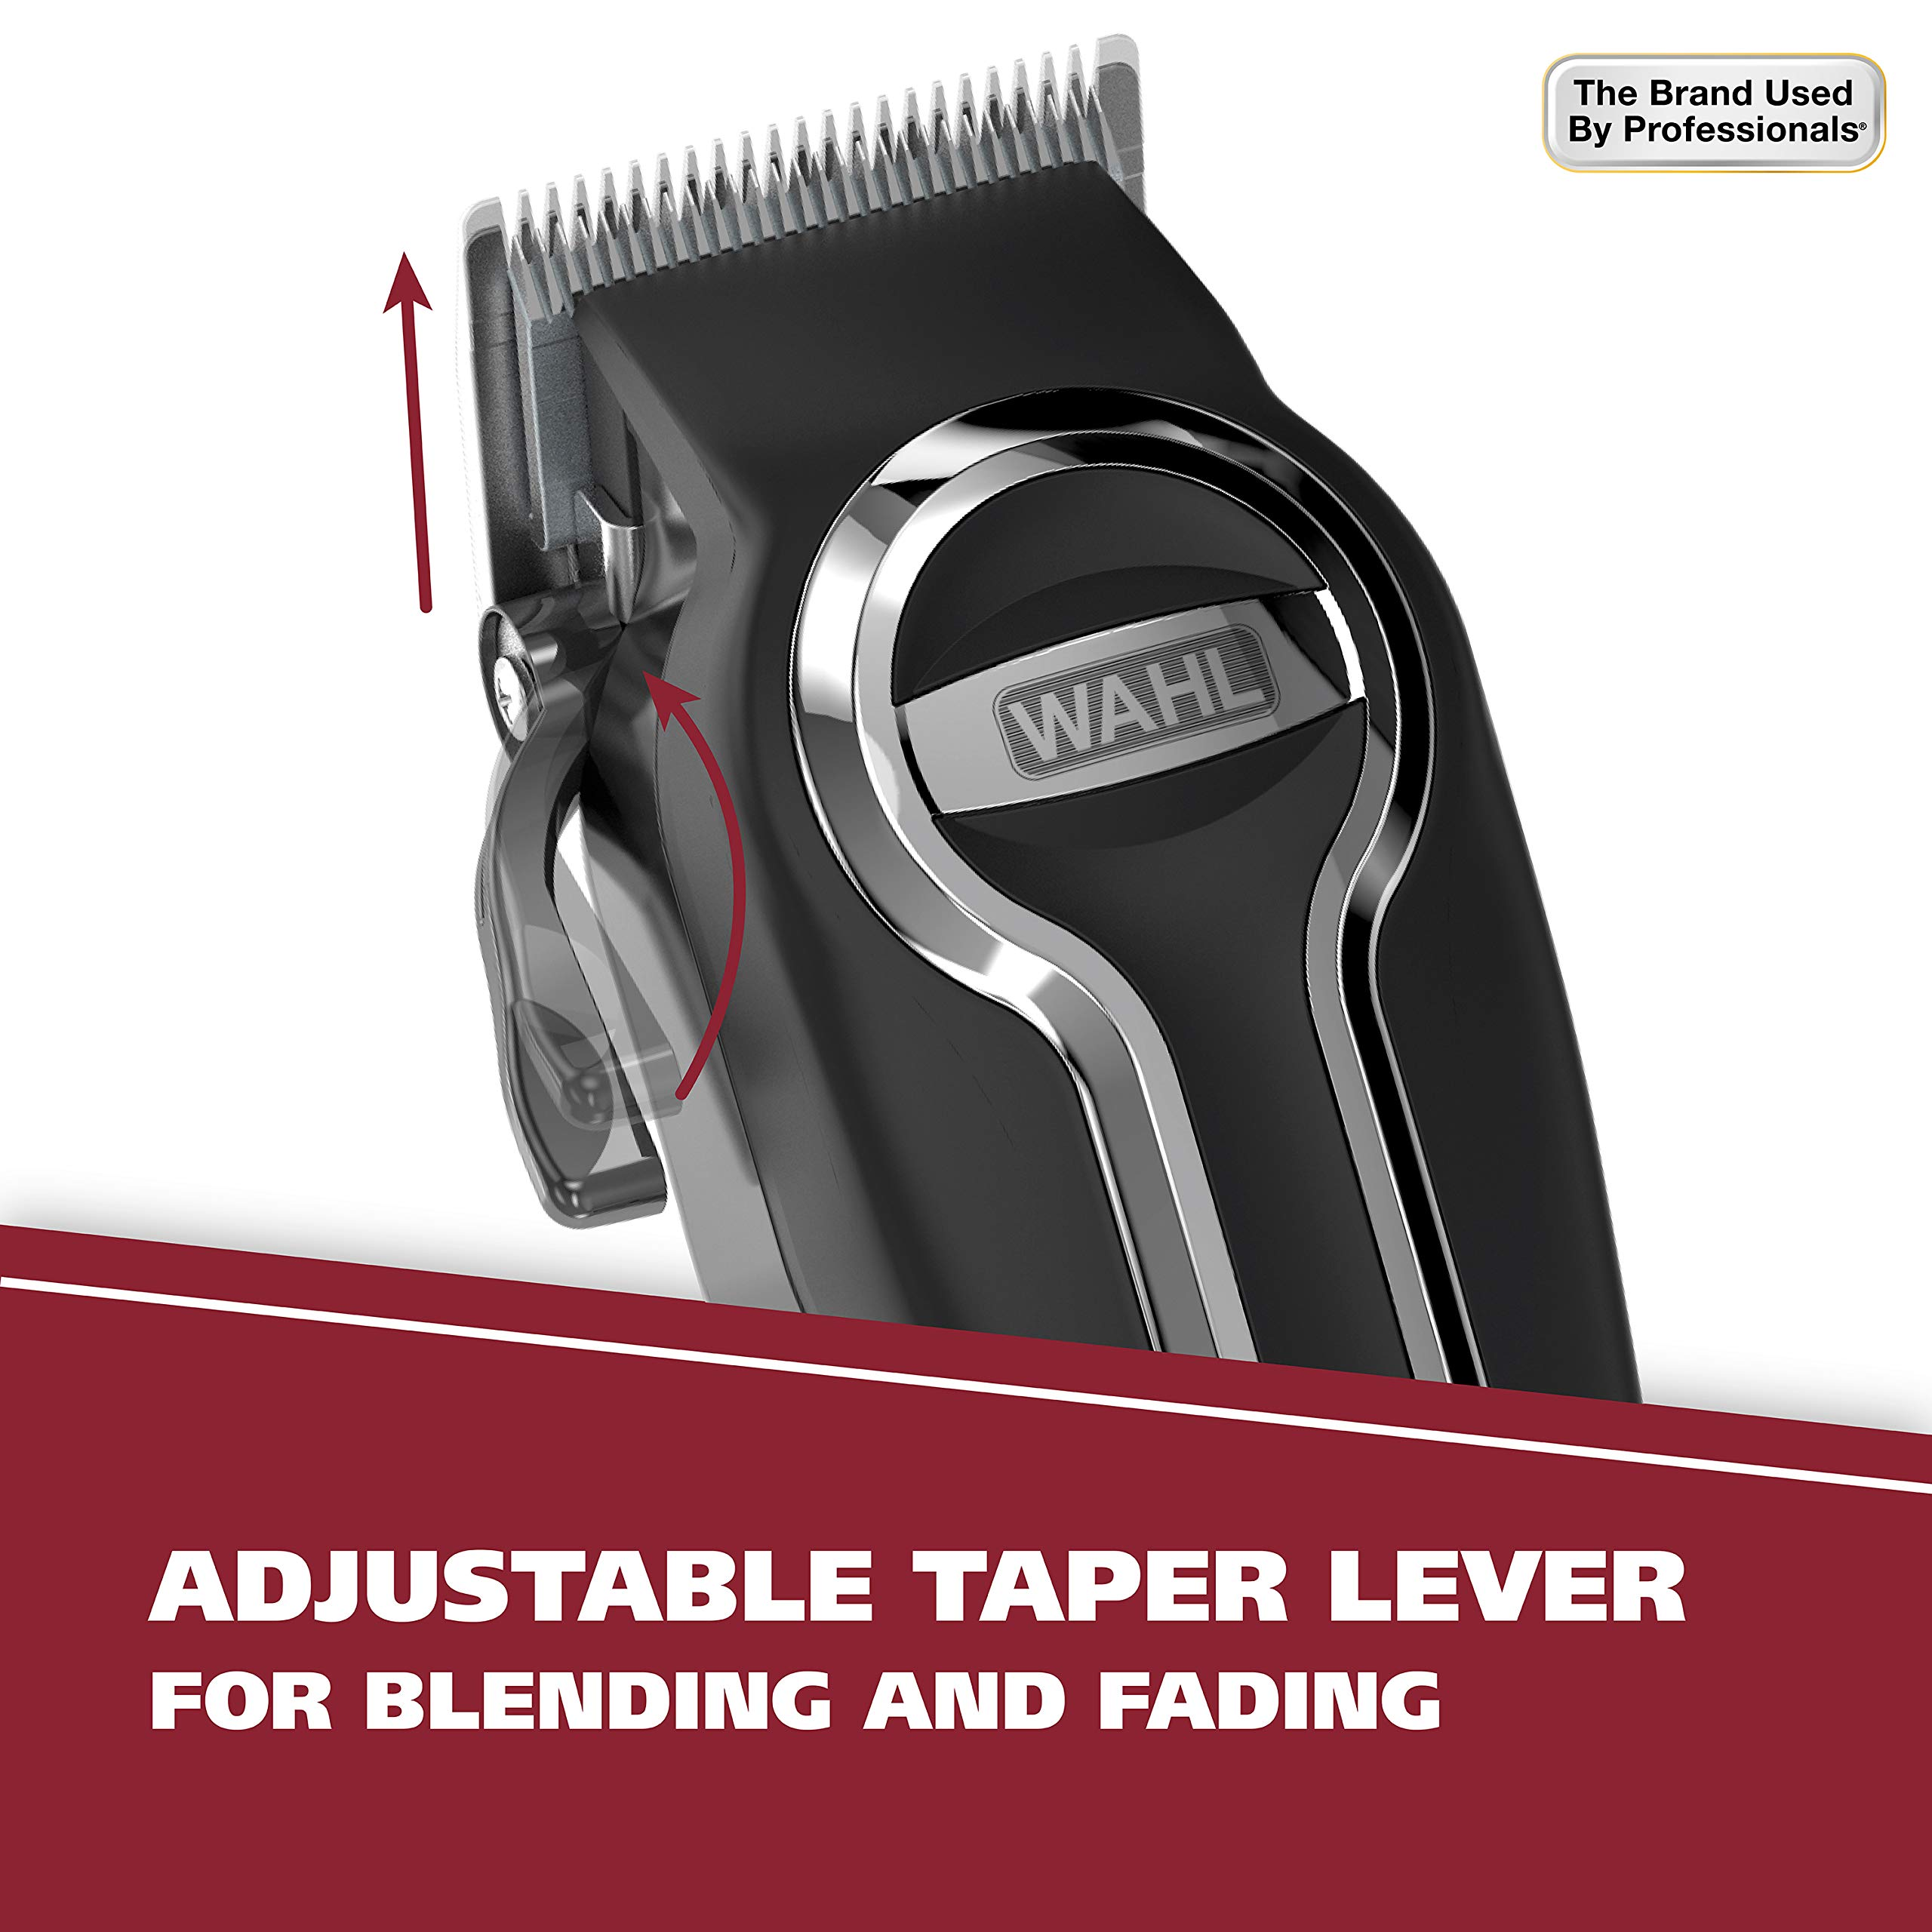 Wahl Clipper Elite Pro High Performance Haircut Kit for men, includes Electric Hair Clippers, secure fit guide combs with stainless steel clips - By The Brand used by Professionals #79602 by WAHL (Image #5)